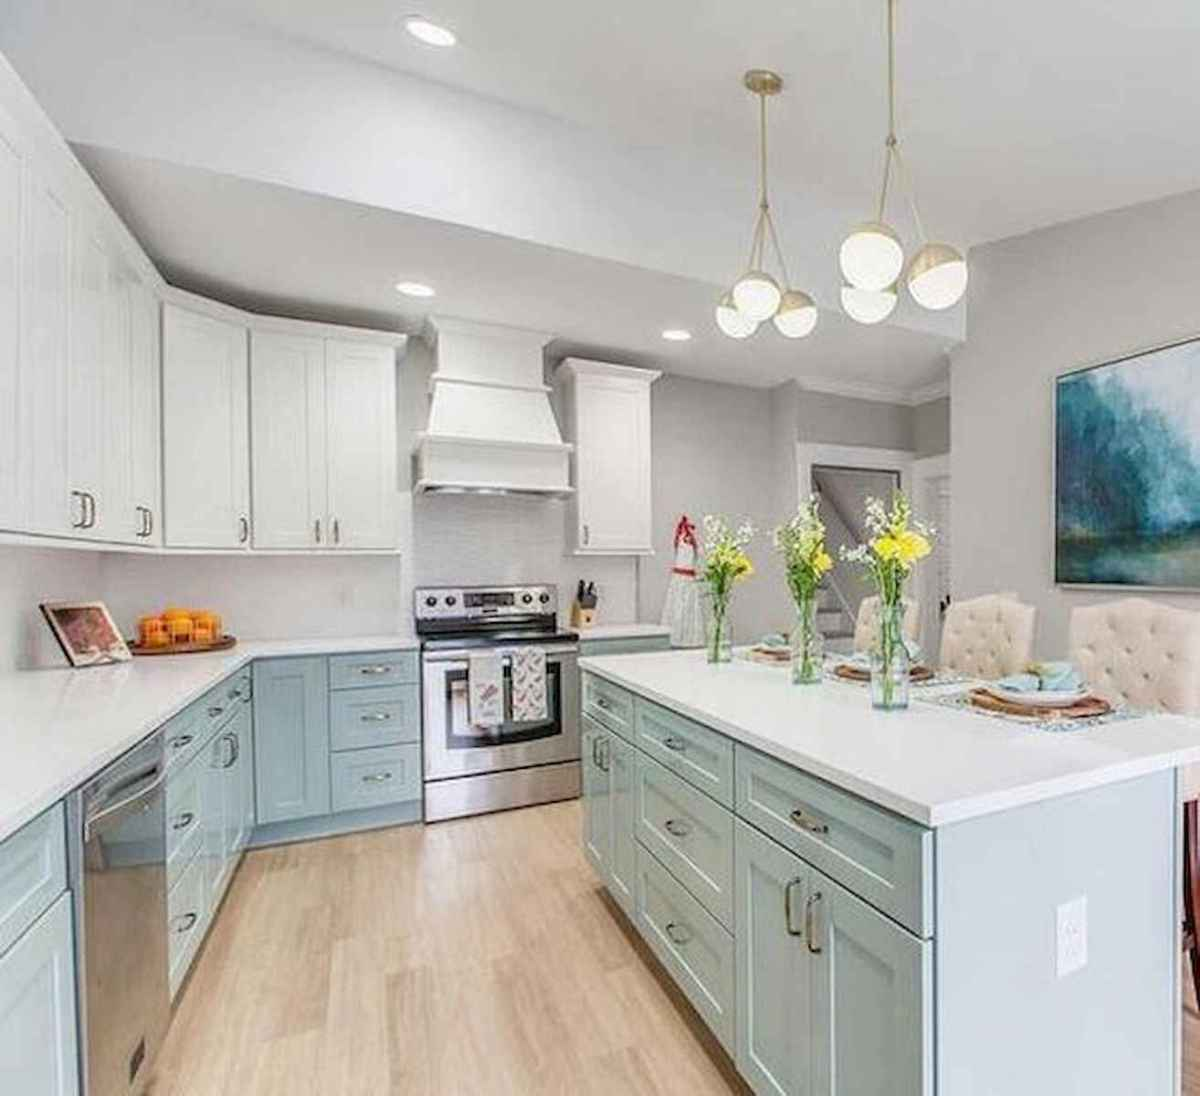 60 Lovely Painted Kitchen Cabinets Two Tone Design Ideas (13)